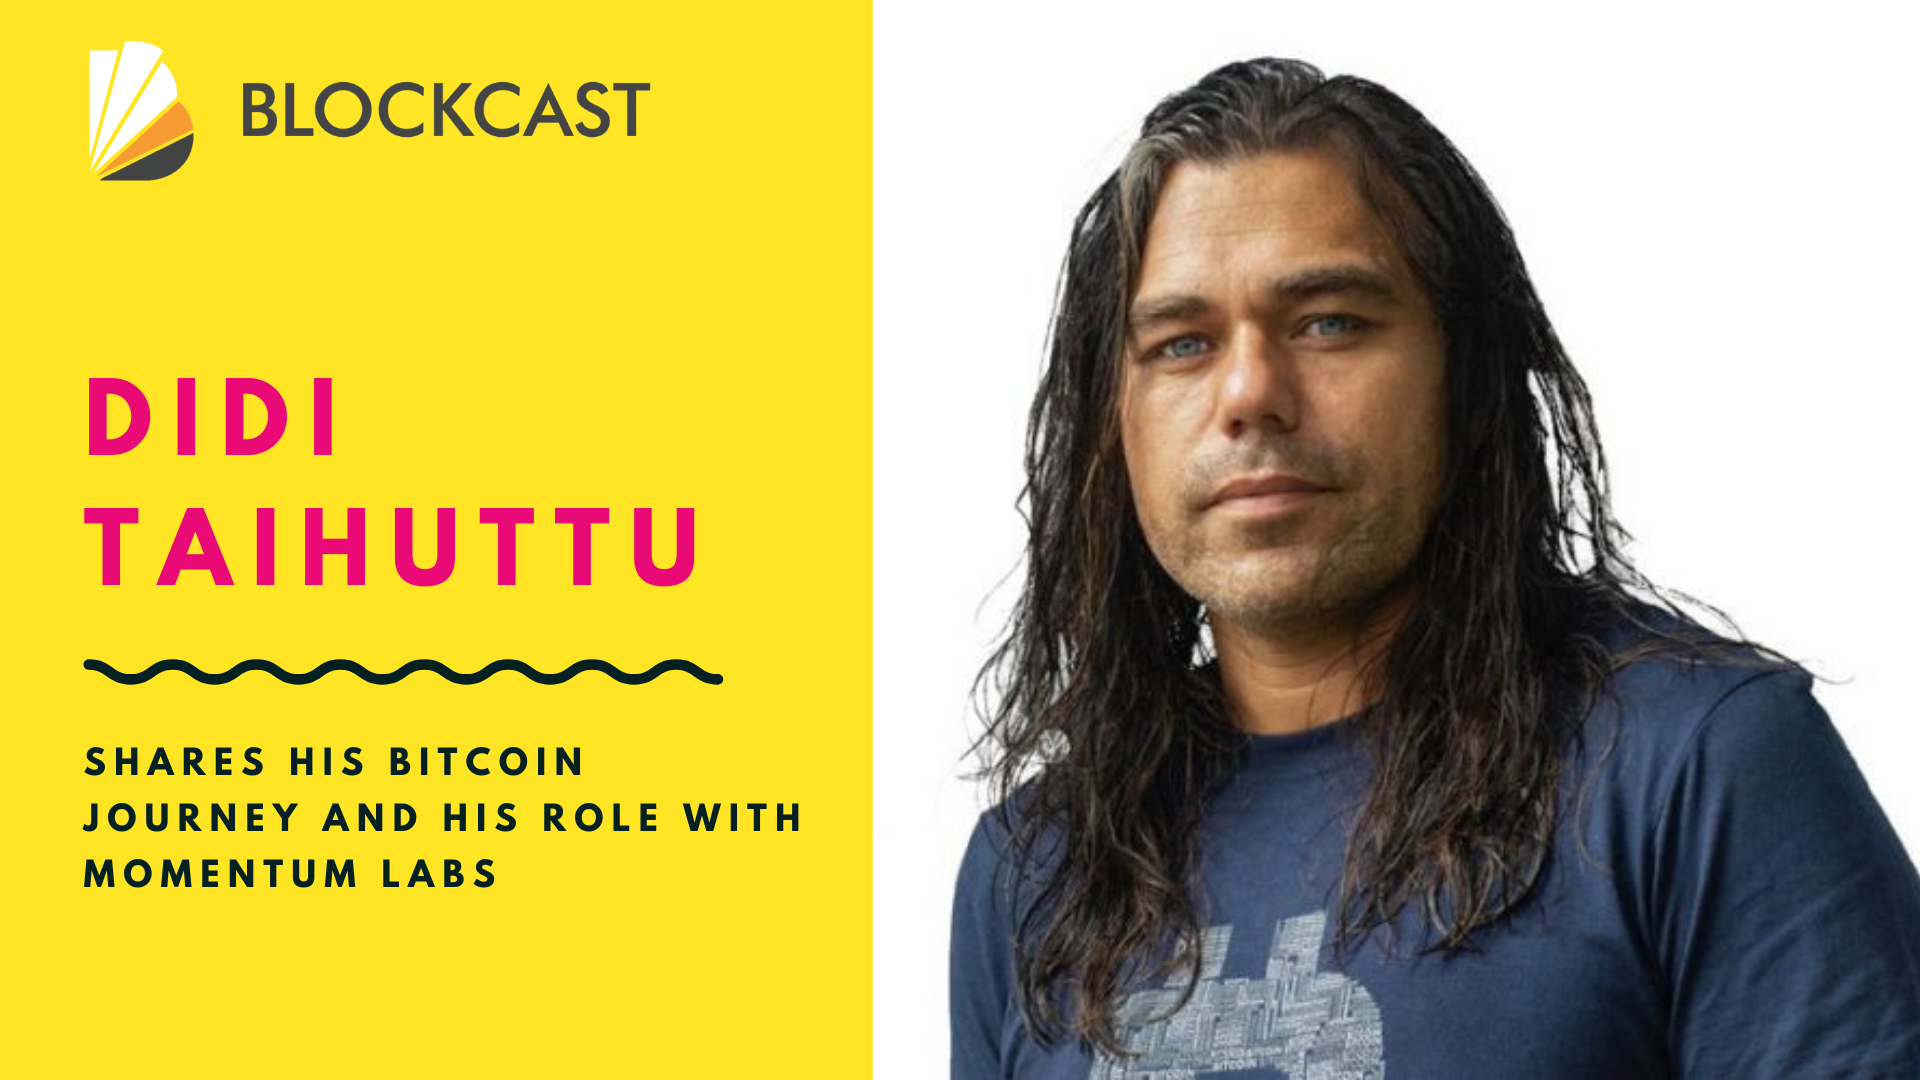 Didi Taihuttu Shares His Bitcoin Journey and his role with Momentum Labs